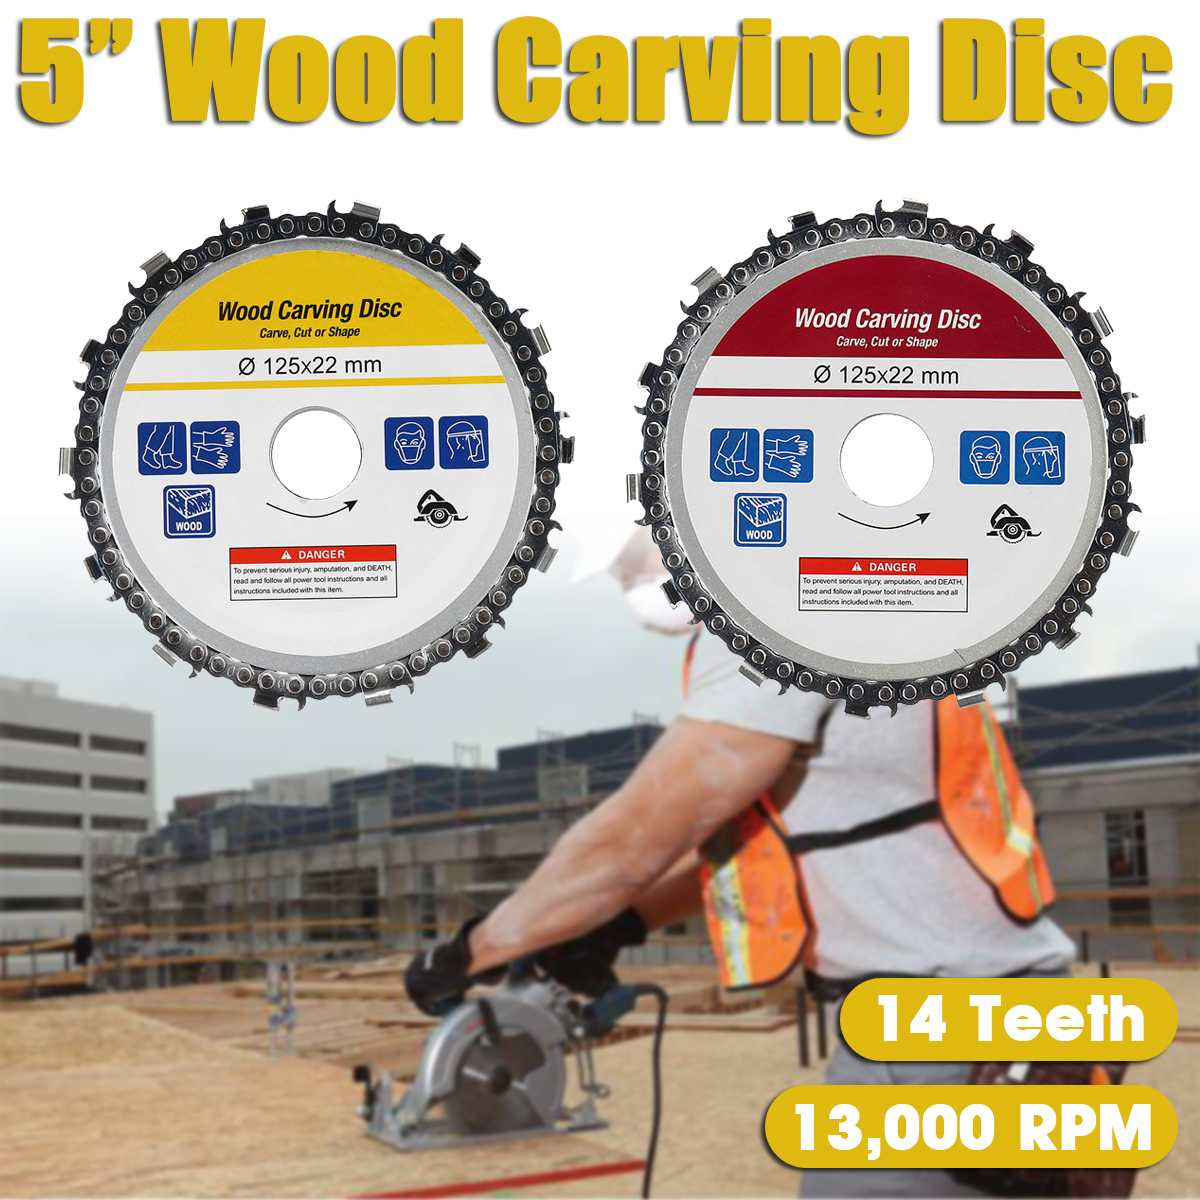 5'' Angle Grinder Disc 14 Tooth Chain Saw For Wood Carving Culpting Plastic Tool Angle Grinders Carving Tool